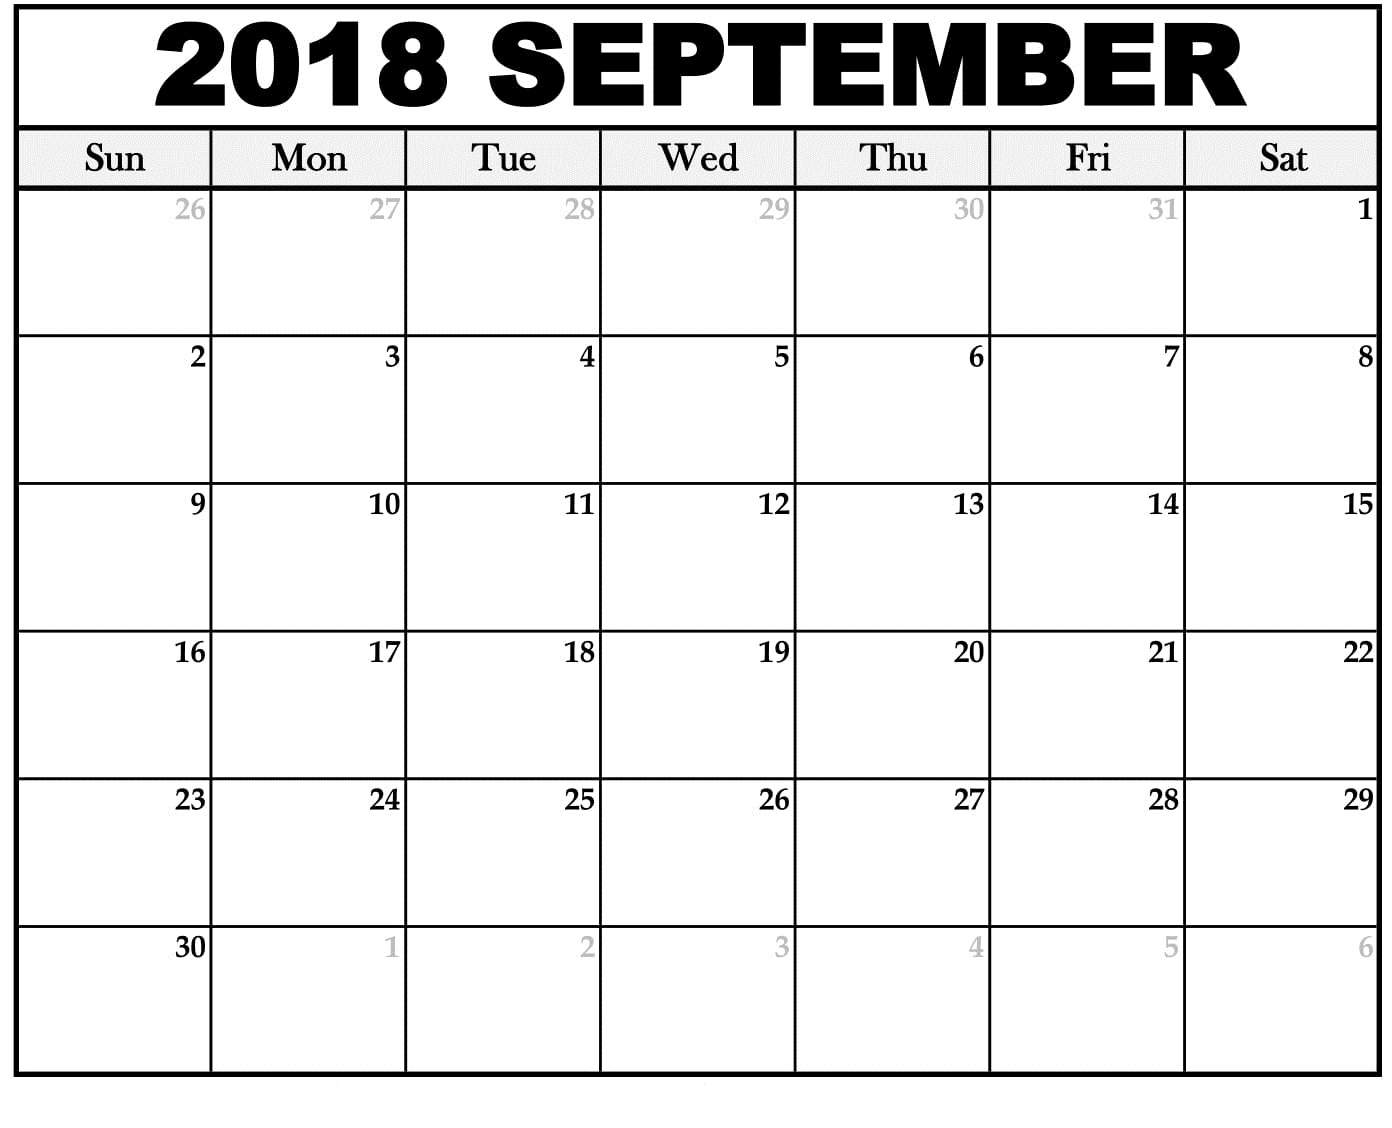 September 2018 Calendar Excel Design